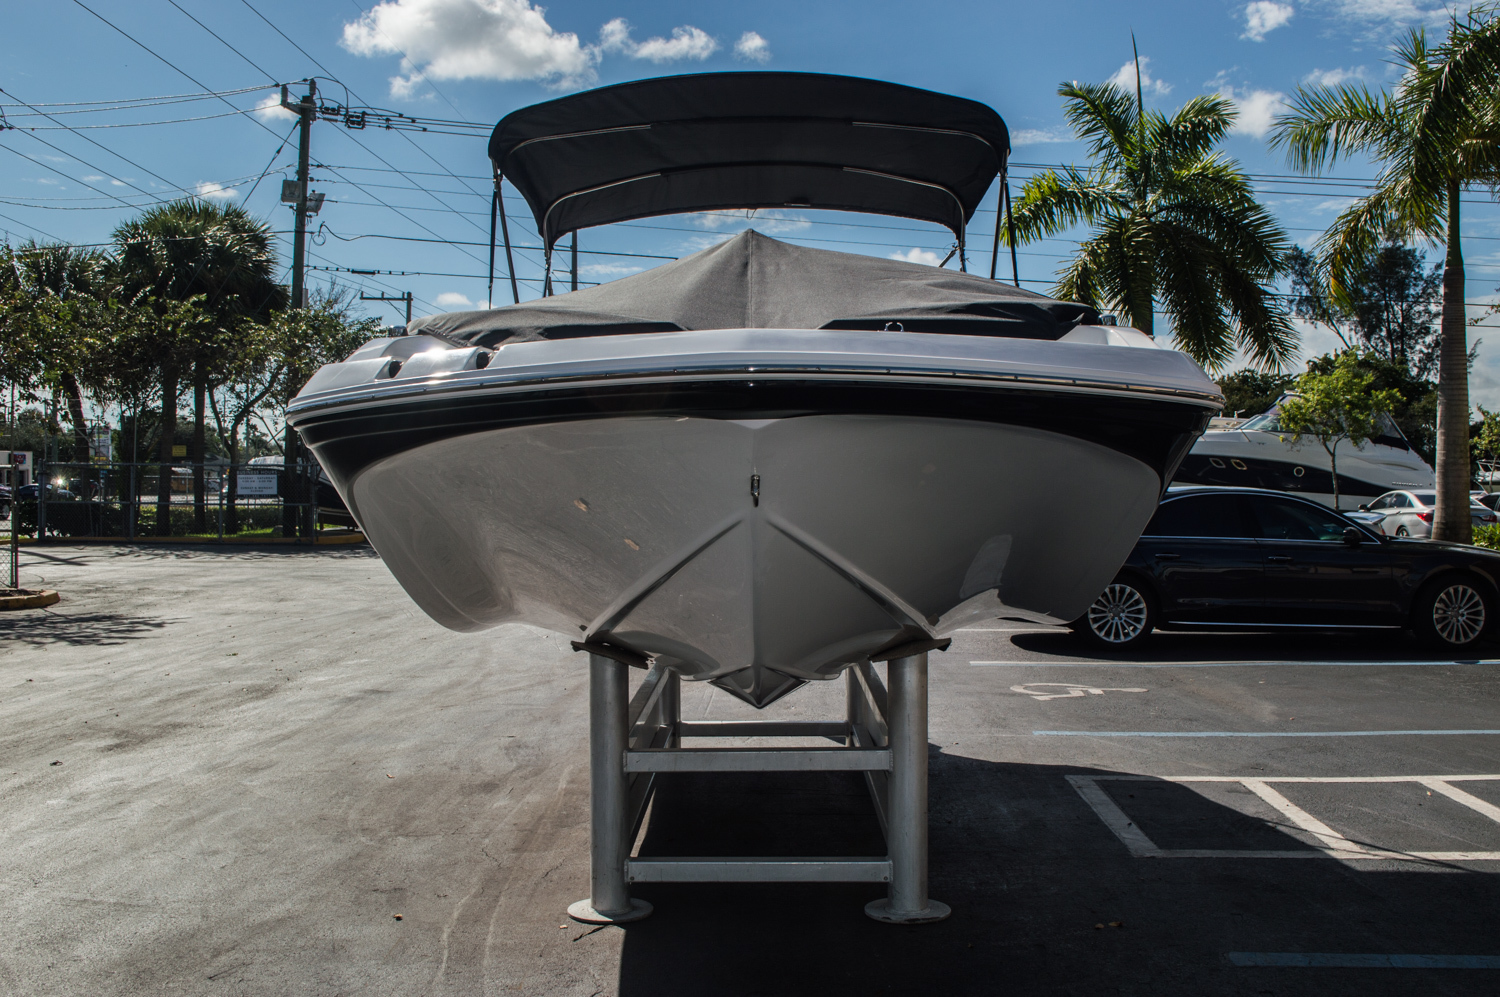 Thumbnail 4 for New 2016 Hurricane SunDeck Sport SS 188 OB boat for sale in West Palm Beach, FL